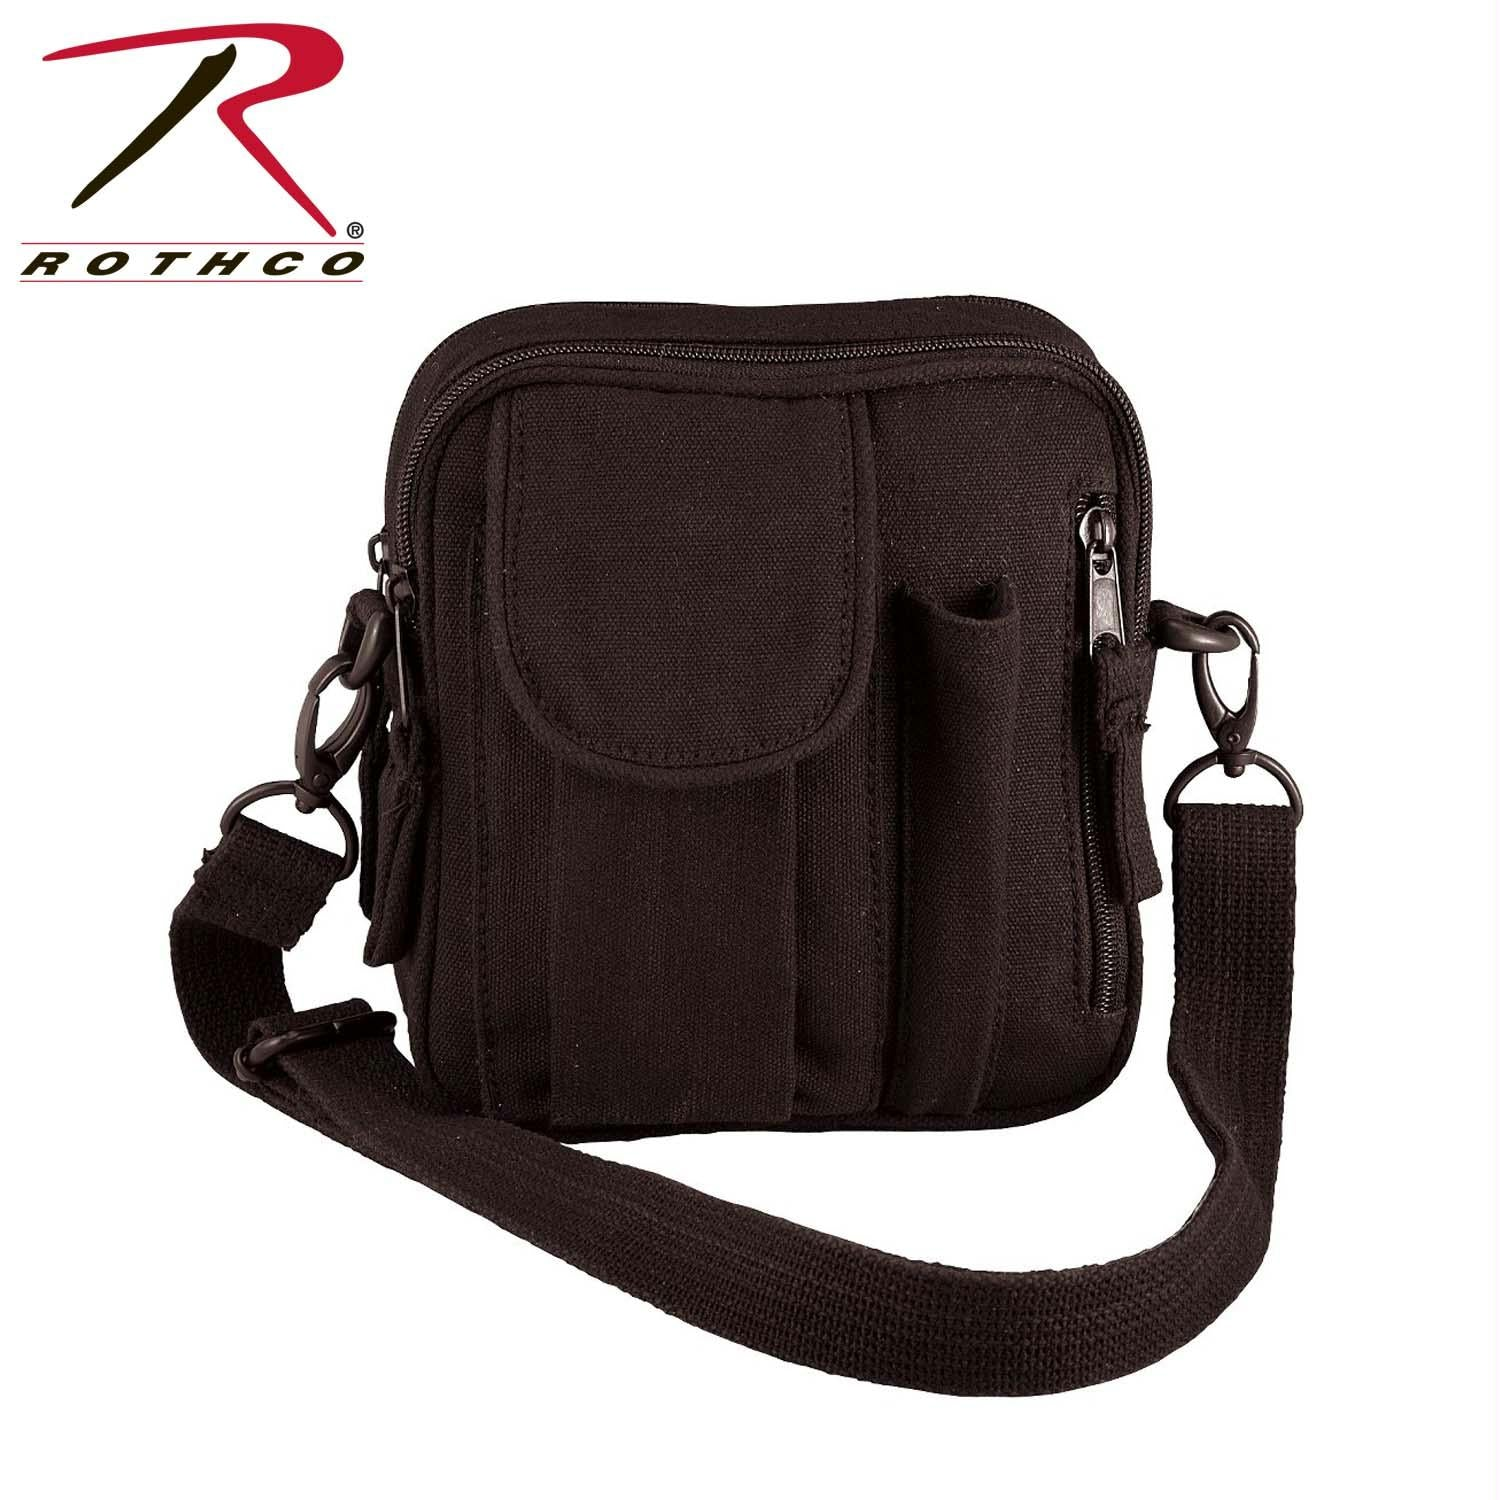 Rothco Canvas Organizer Bag - Black